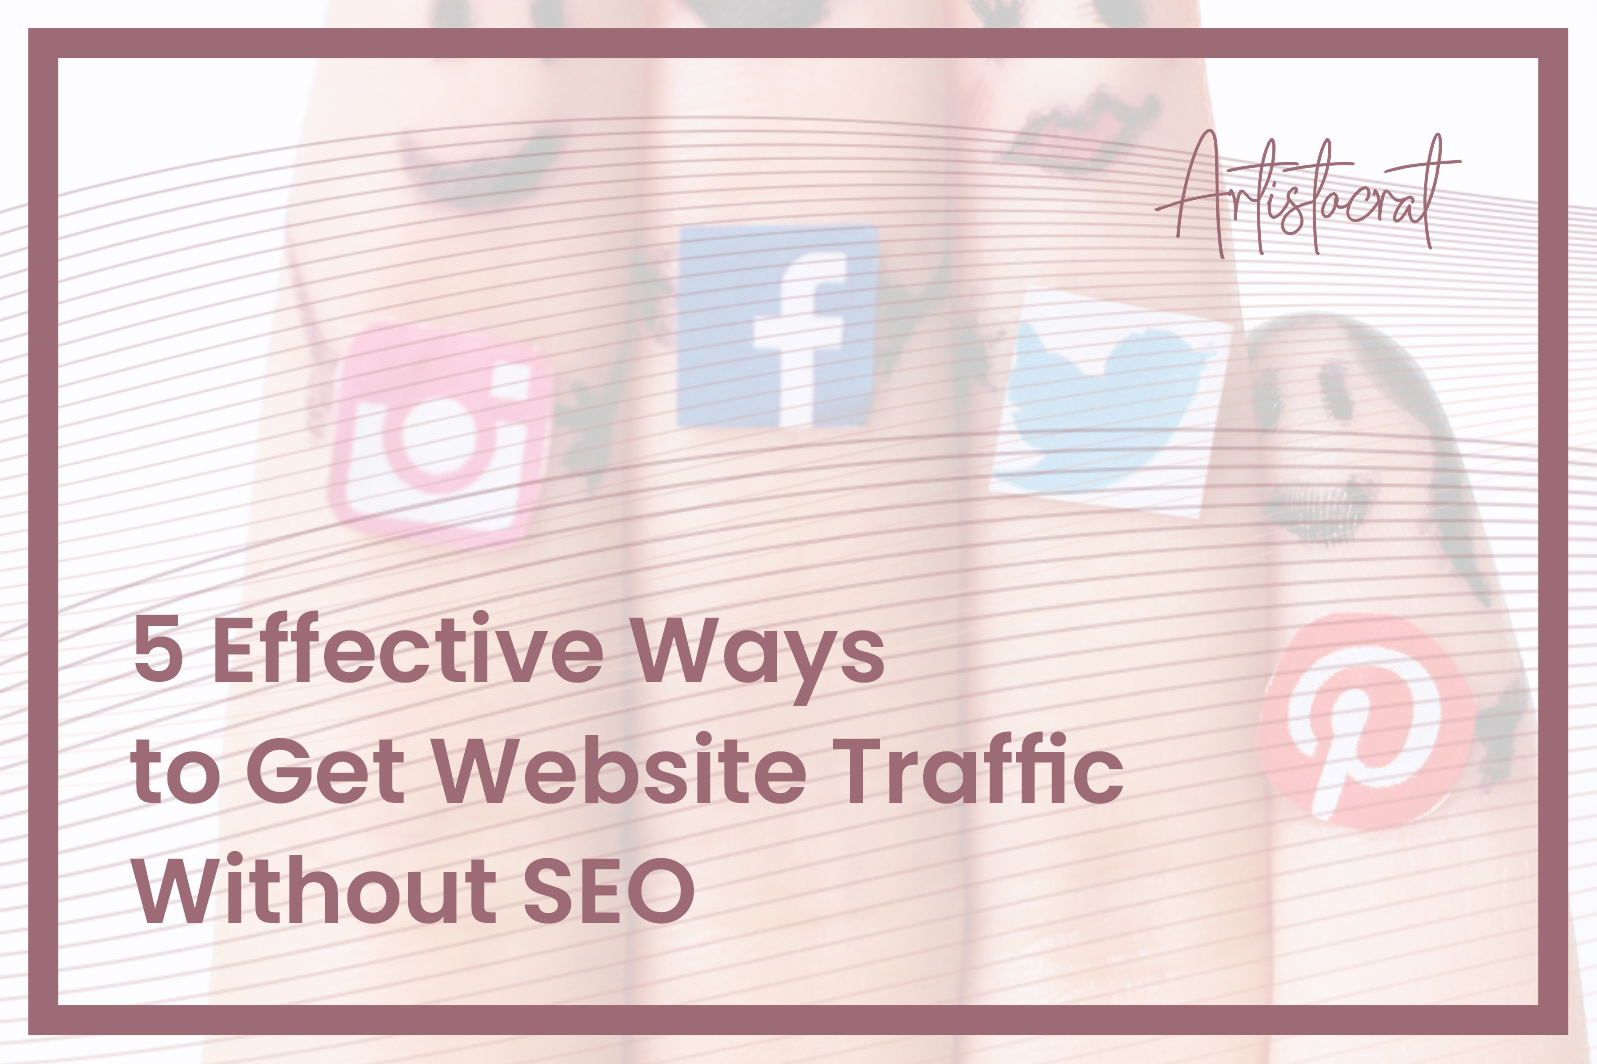 Effective-Ways-Get-Website-Traffic-Without-SEO